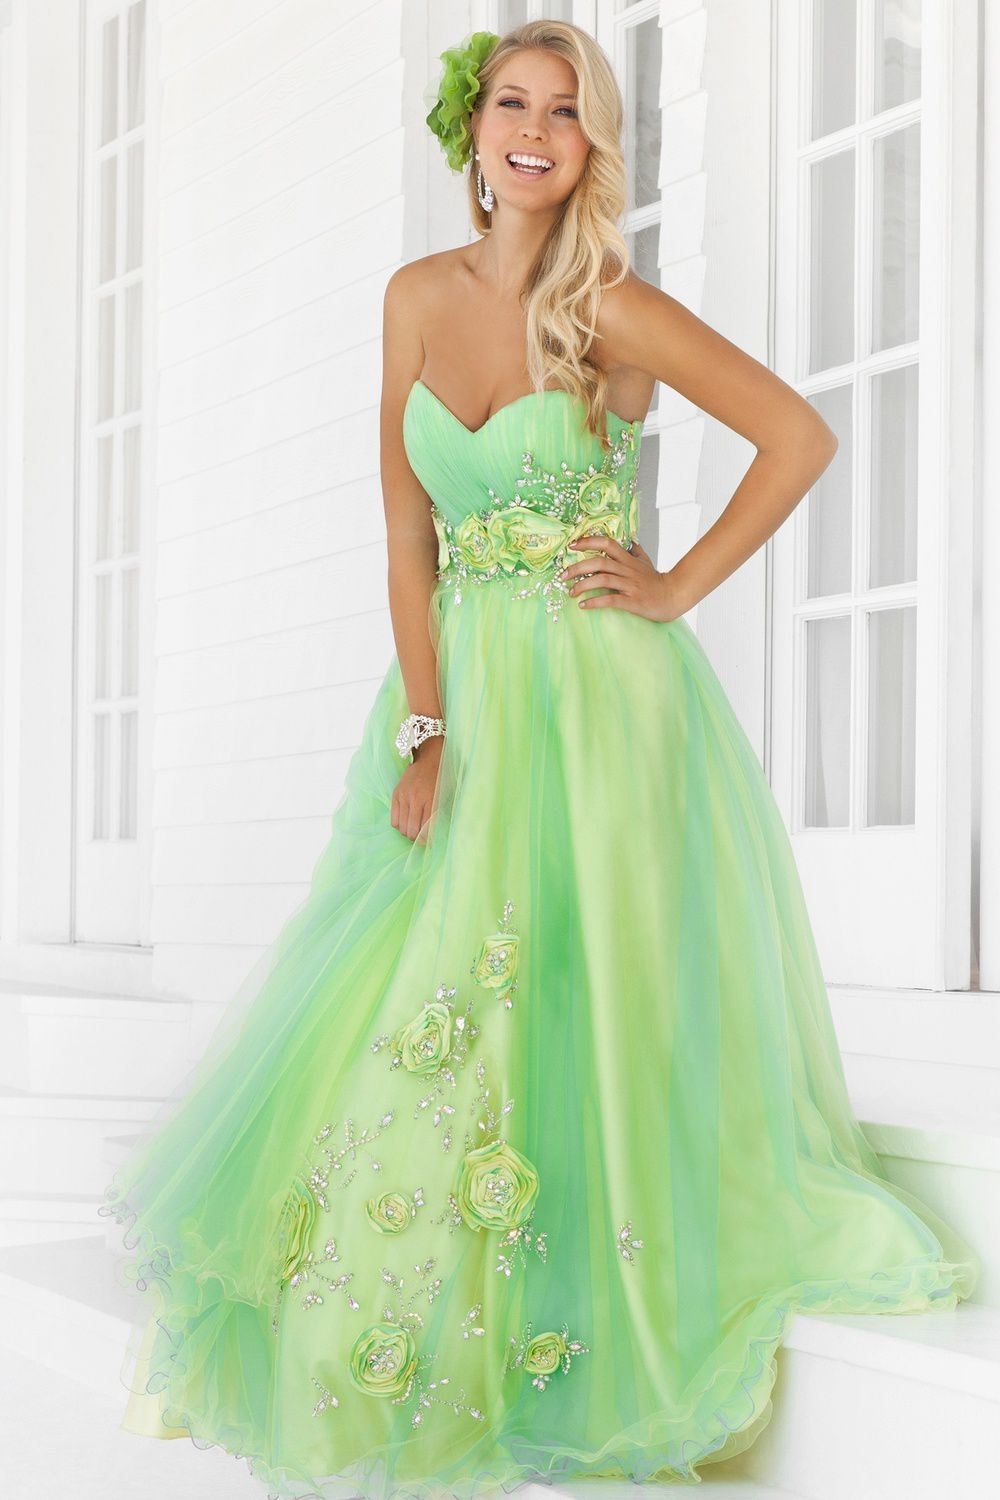 Pretty light green strapless dress pictures photos and for Light green wedding dress